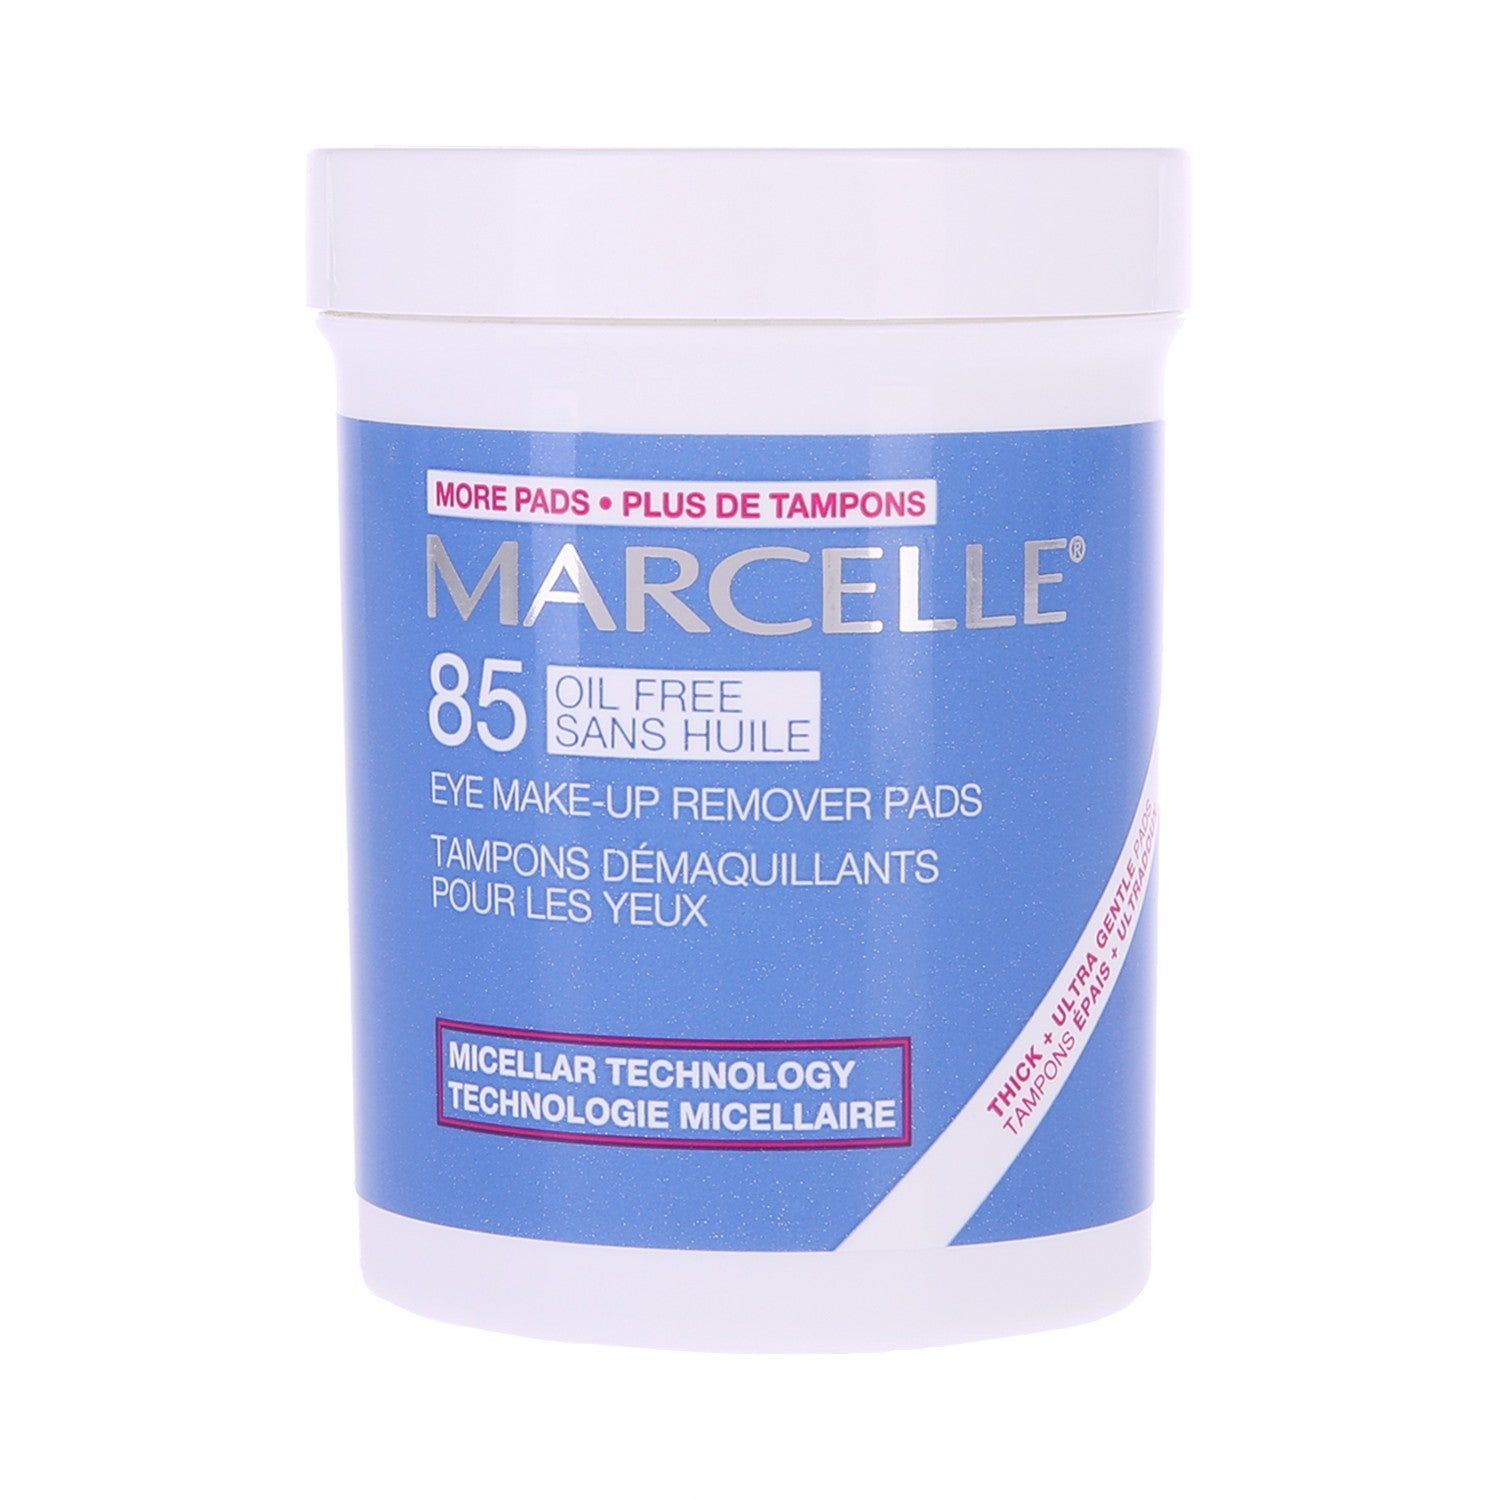 Marcelle Oil Free Eye Make-Up Remover Pads